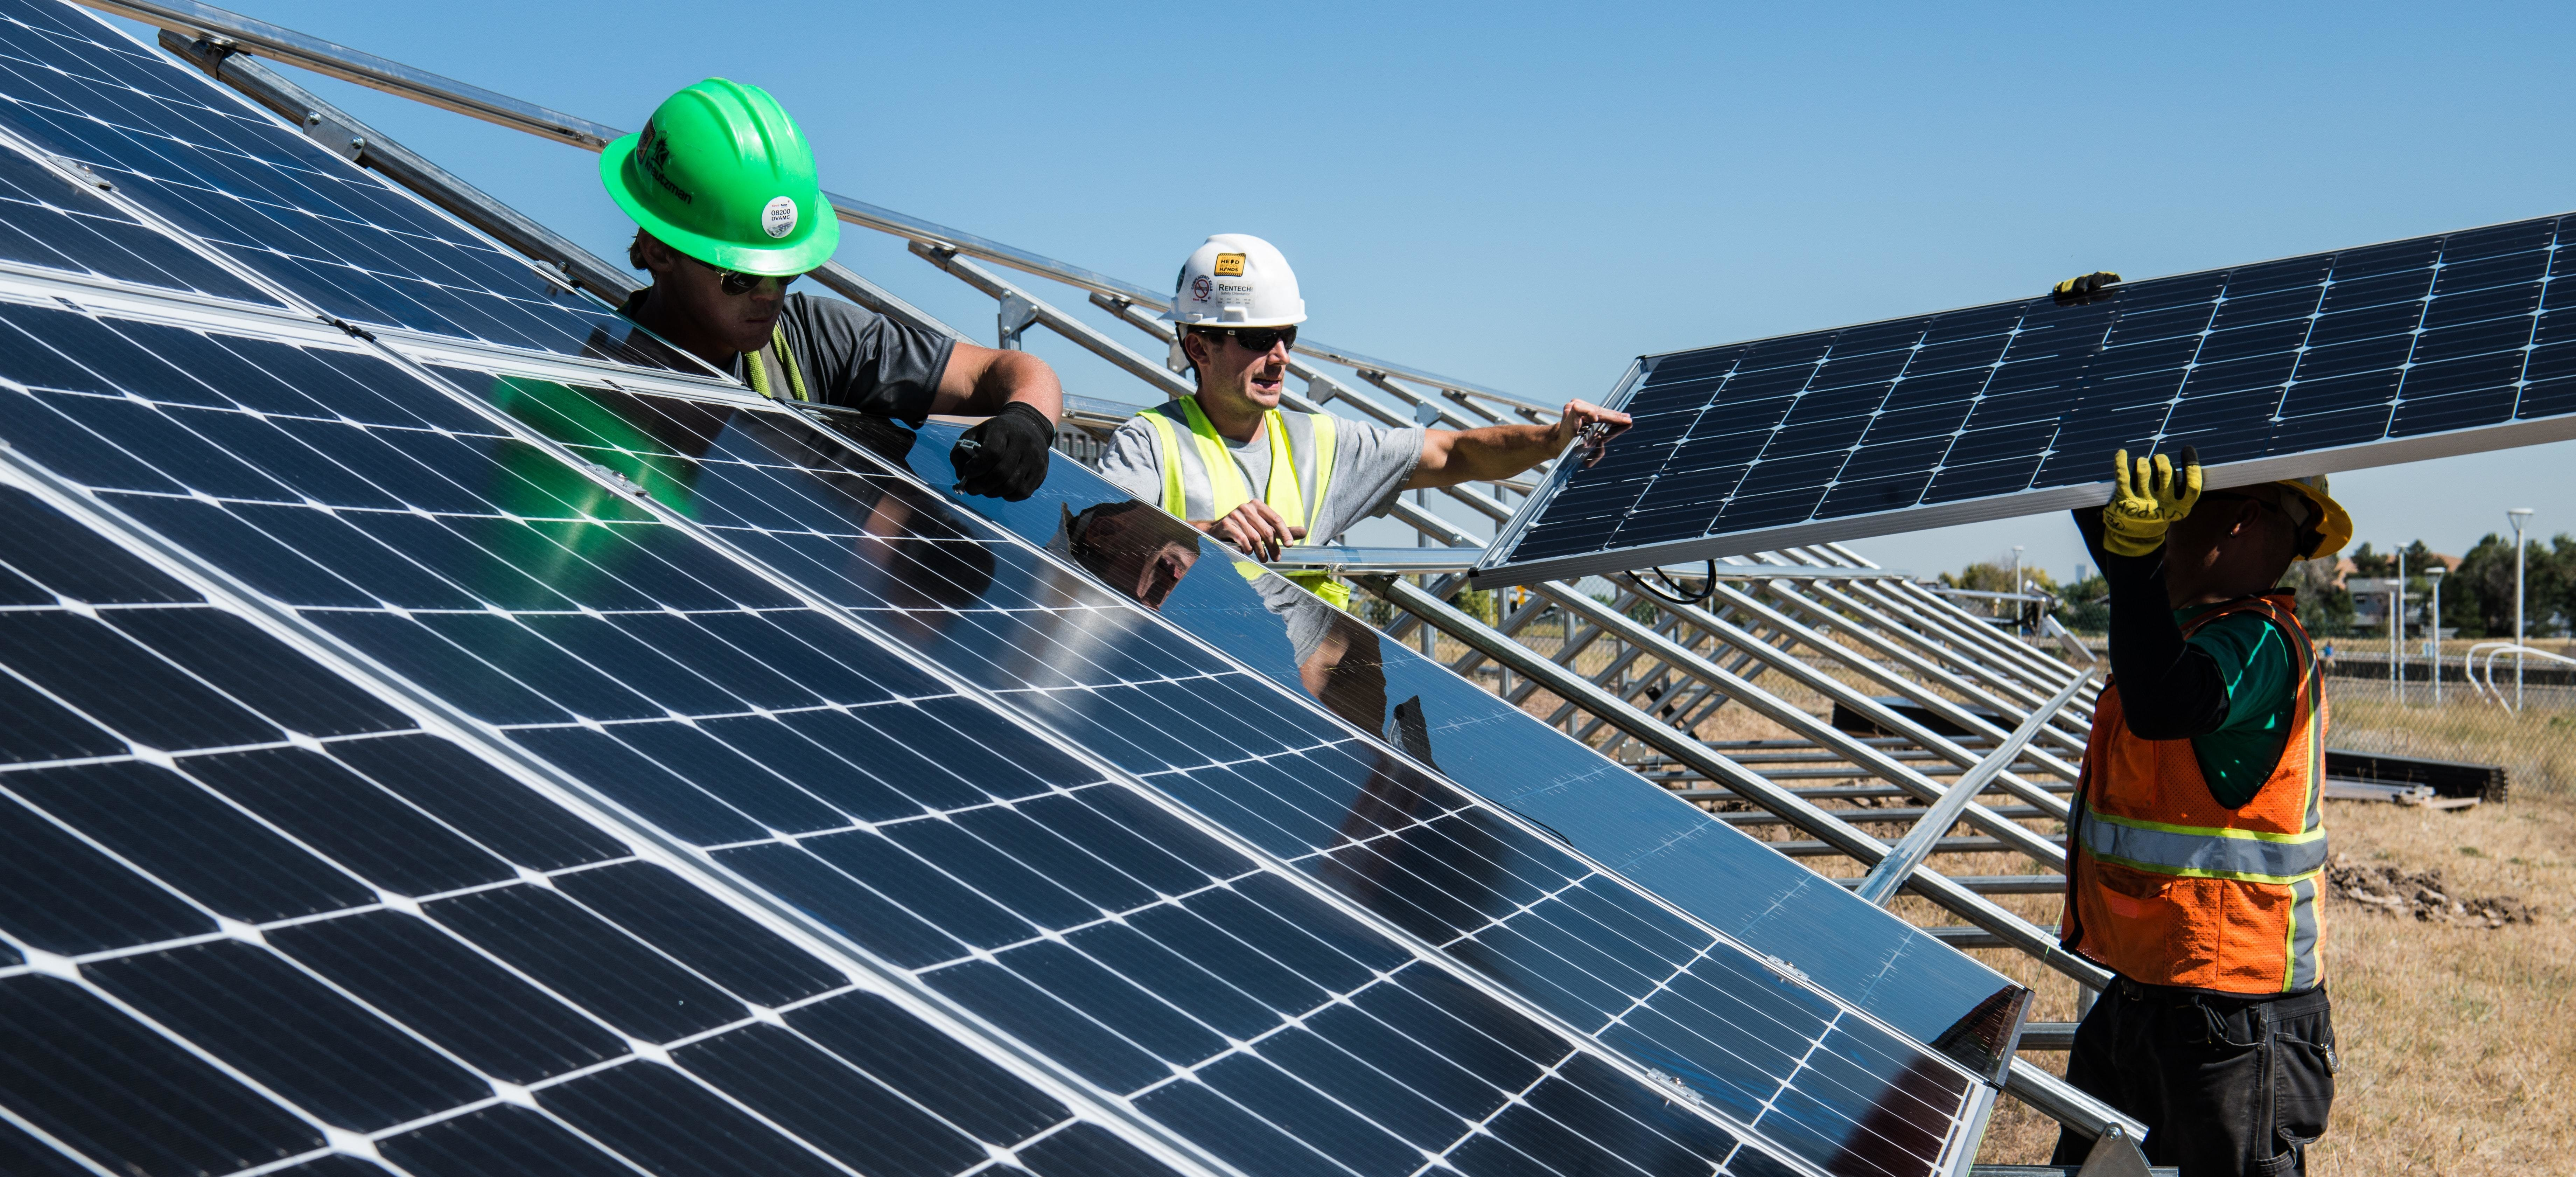 Workers fitting solar panels.